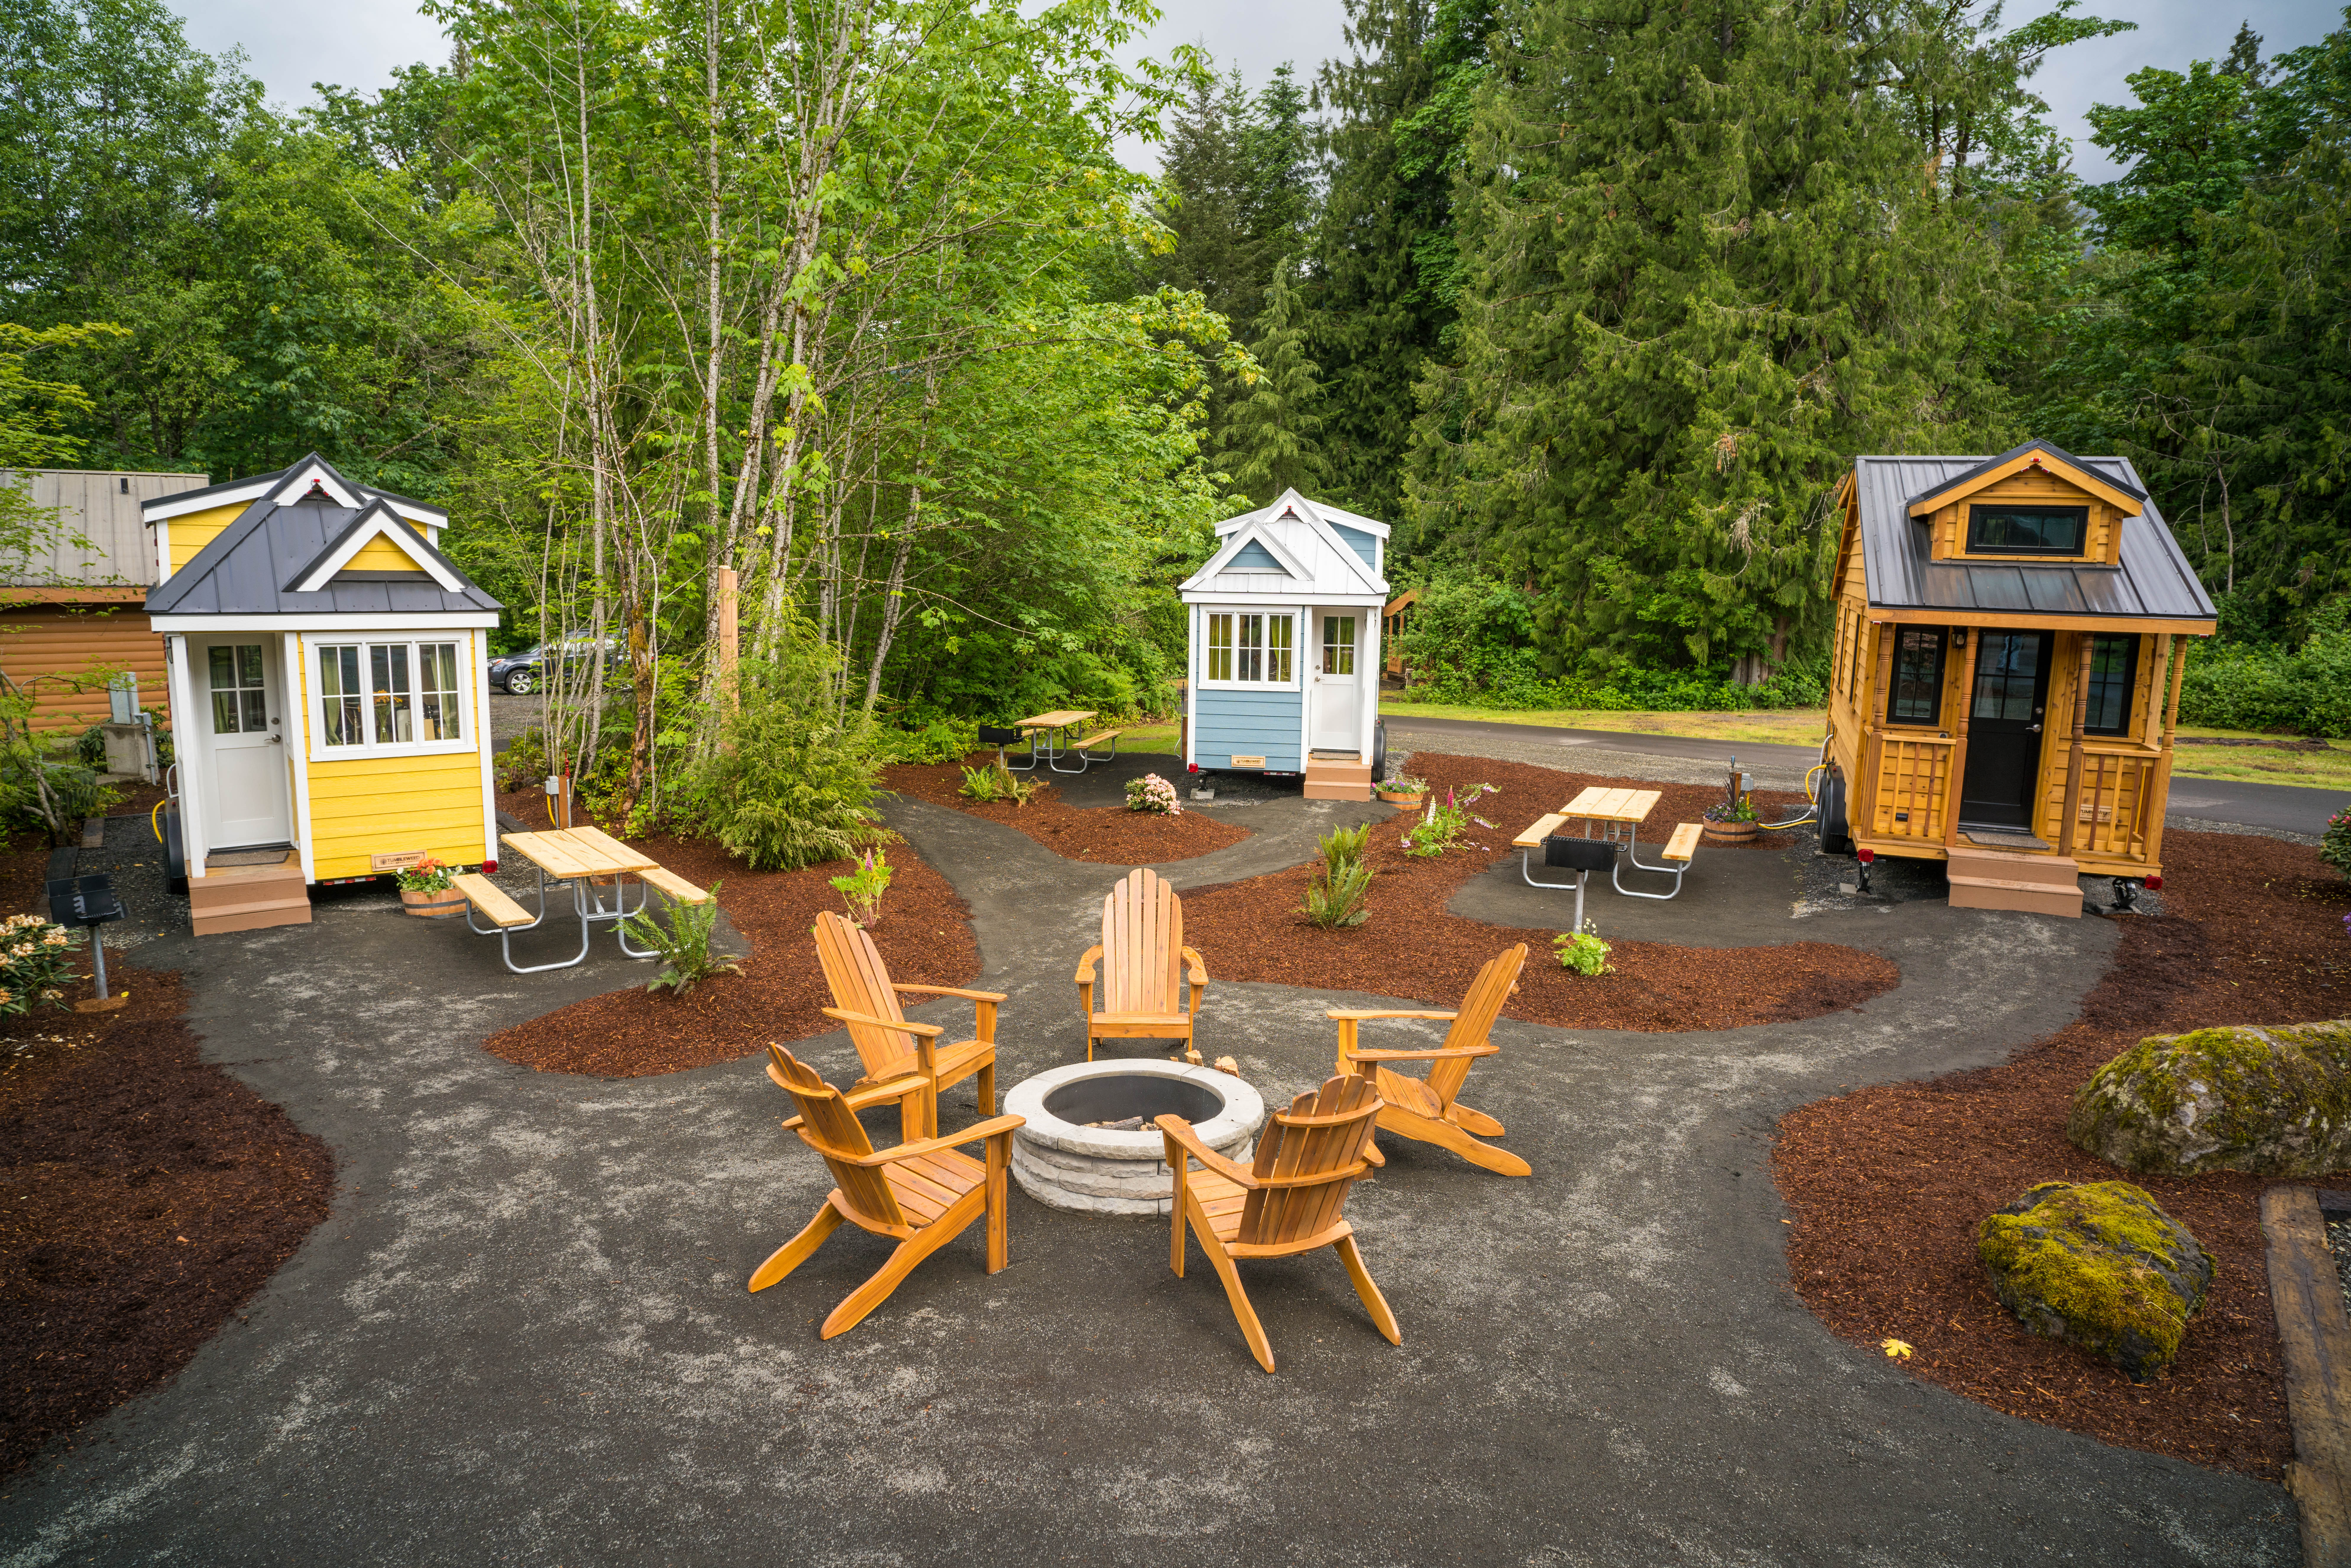 Three tiny homes in a campground in Mt. Hood, Oregon.